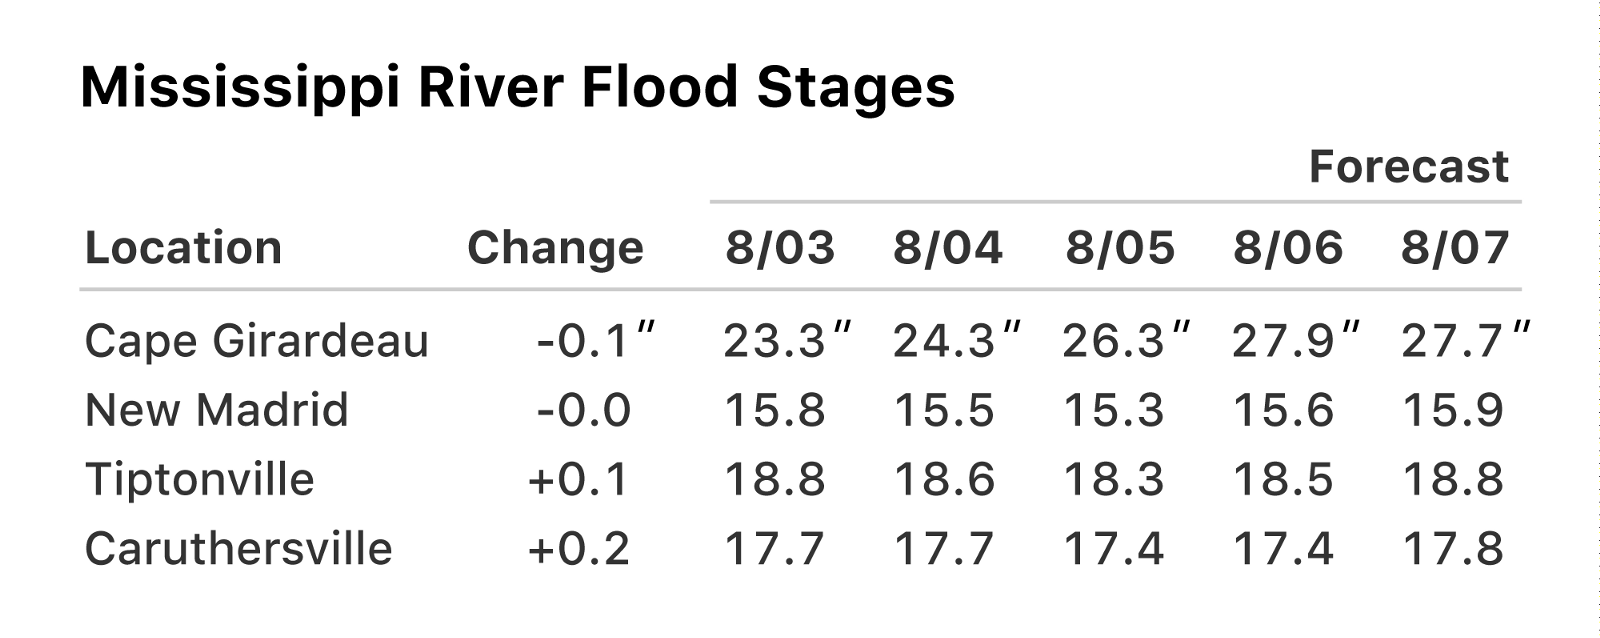 Mississippi River Flood Stage Forecast - NOAA